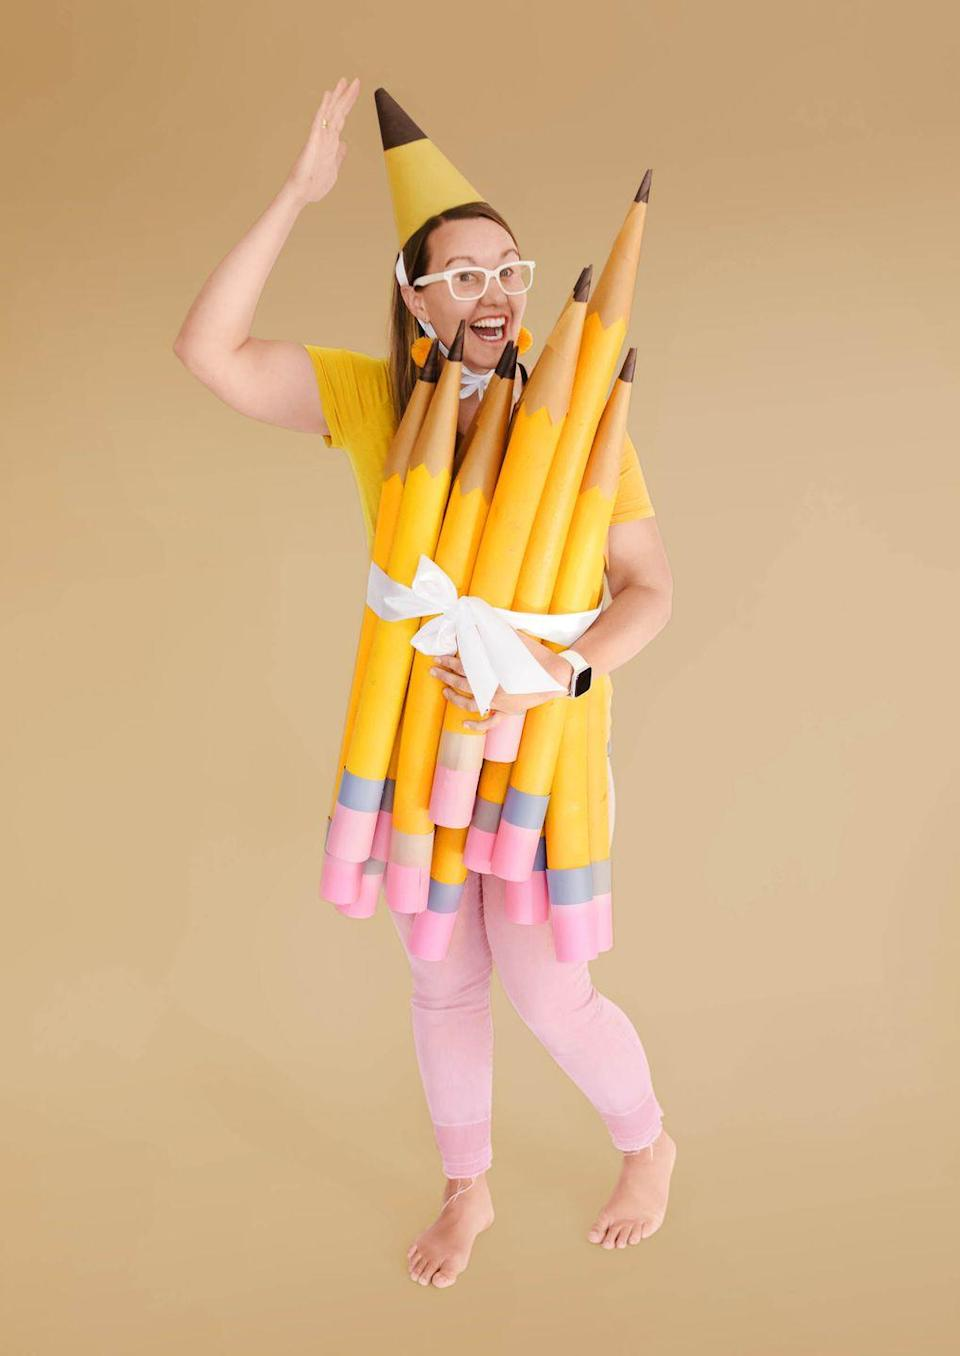 """<p>This costume will have you lookin' sharp!</p><p>To make the costume, round up some pool noodles. Coat the summer staple with yellow spray paint (try Rust-Oleum American Accents in Marigold); add brown paper-cone tips. Wrap ends with pink and gray craft paper to make erasers. Secure the bundle around yourself with ribbon. Extra credit for a corresponding pointy party hat.</p><p><strong>Get the tutorial at <strong><a href=""""https://ohyaystudio.com/a-bouquet-of-newly-sharpened-pencils-costume-and-how-much-i-love-youve-got-mail/"""" rel=""""nofollow noopener"""" target=""""_blank"""" data-ylk=""""slk:Oh Yay Studio"""" class=""""link rapid-noclick-resp"""">Oh Yay Studio</a></strong>.</strong></p><p><a class=""""link rapid-noclick-resp"""" href=""""https://www.amazon.com/Oodles-Noodles-Deluxe-Foam-Pool/dp/B01LBEX84S/ref=sr_1_1_sspa?tag=syn-yahoo-20&ascsubtag=%5Bartid%7C10050.g.22118522%5Bsrc%7Cyahoo-us"""" rel=""""nofollow noopener"""" target=""""_blank"""" data-ylk=""""slk:SHOP POOL NOODLES"""">SHOP POOL NOODLES</a></p>"""